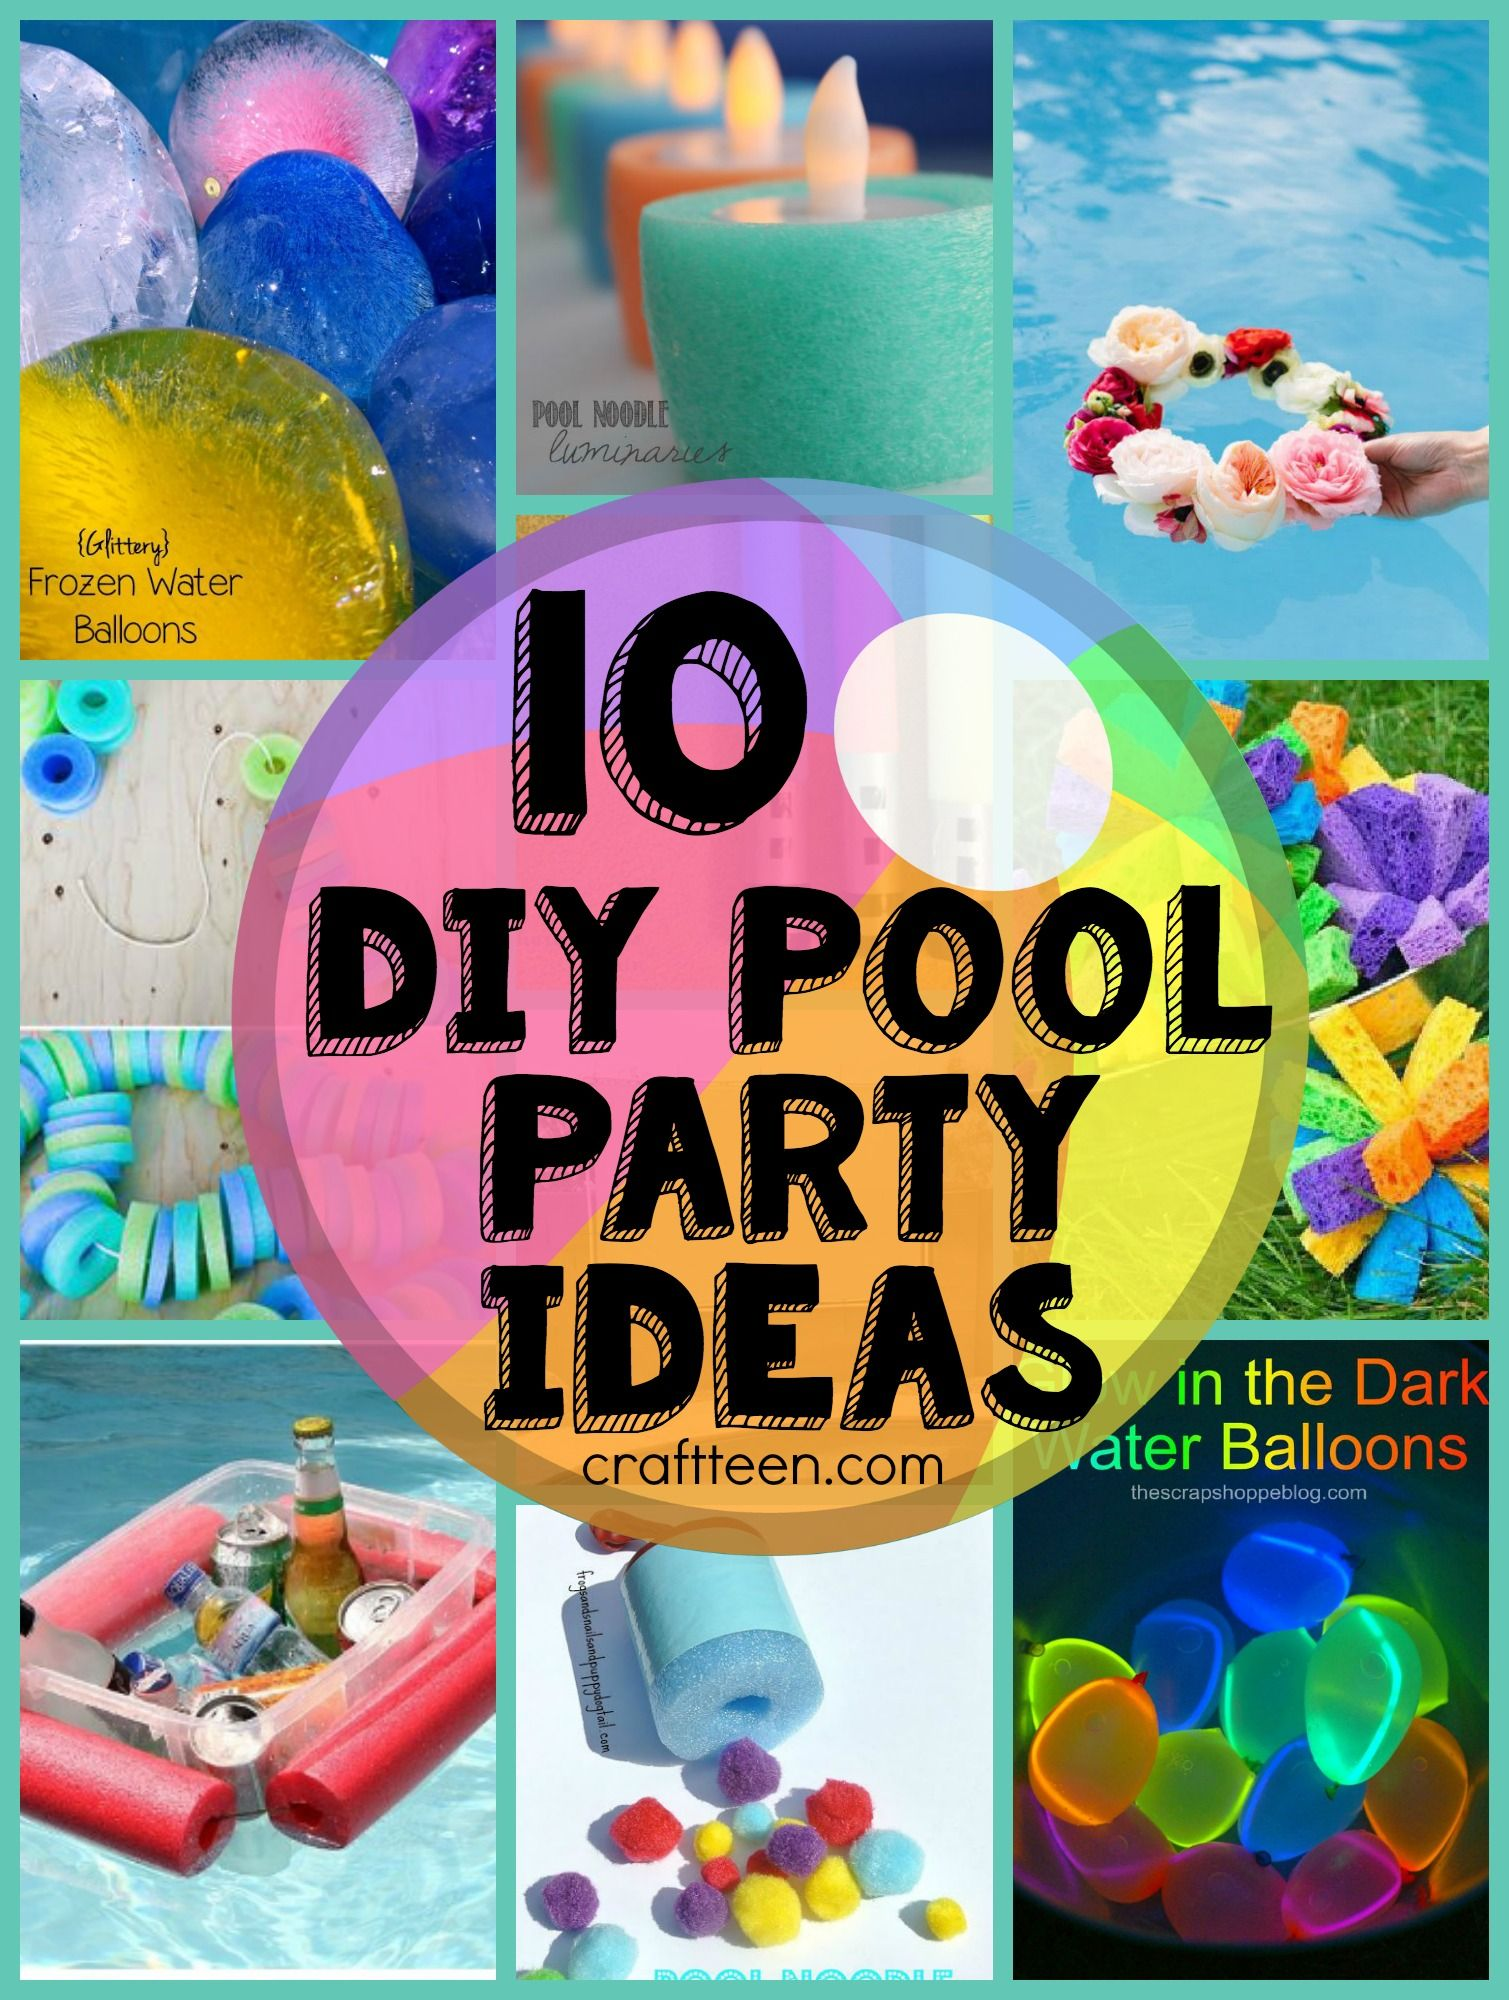 Cool Pool Party Ideas 10 pool party ideas to cool down your summer quicken loans zing blog The 25 Best Pool Party Significado Ideas On Pinterest Vs Nadar Viajar A Alemania And Consejos Para Tomar Selfies